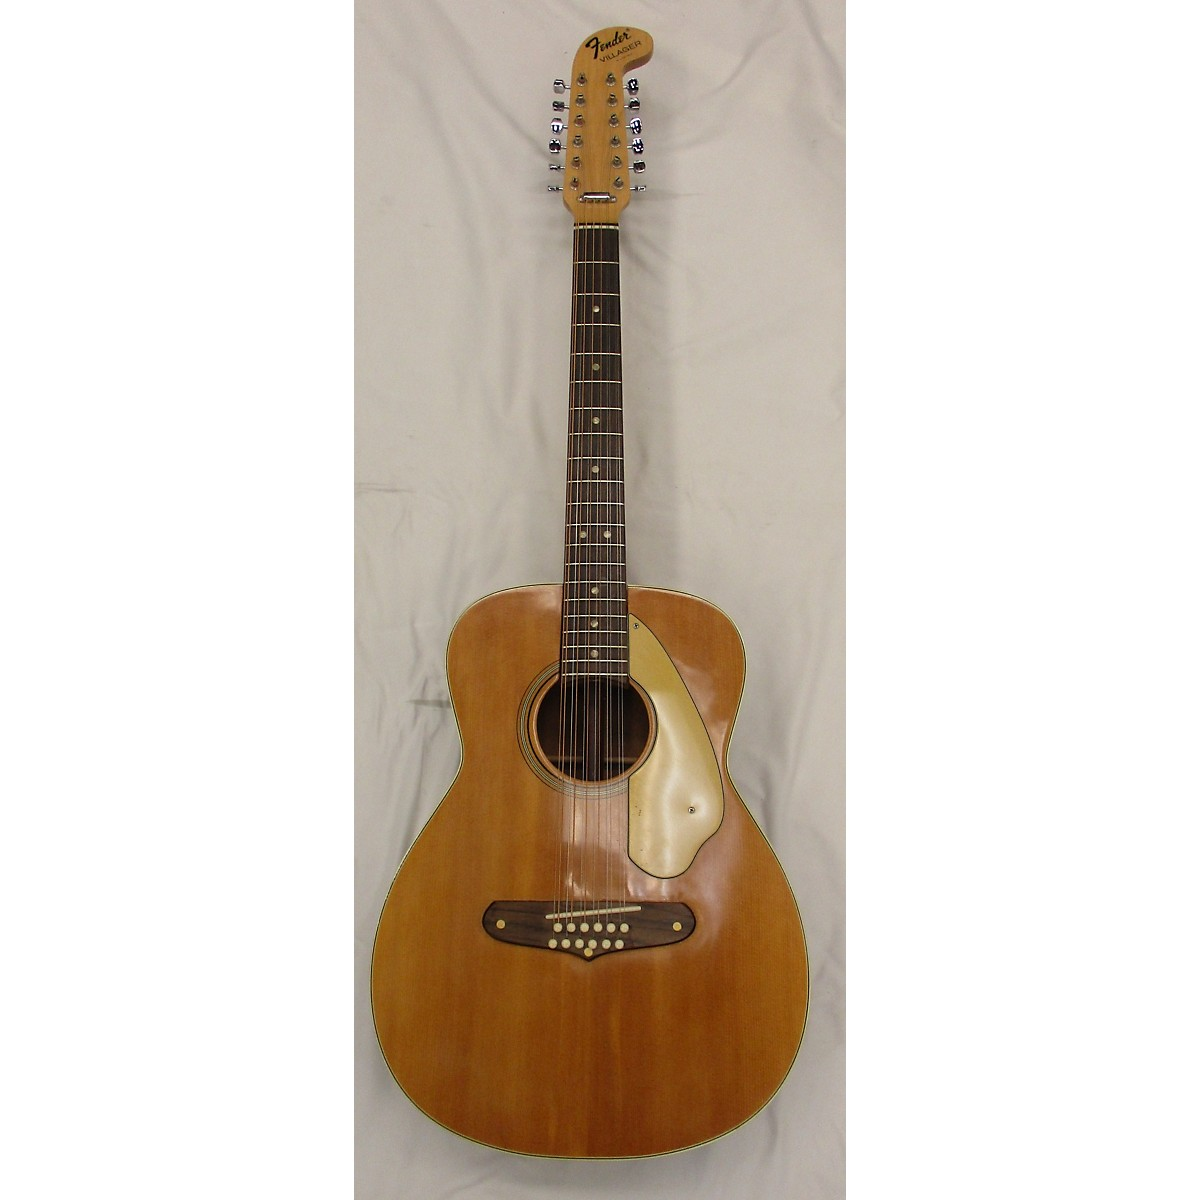 Fender 1969 Villager 12 String Acoustic Guitar